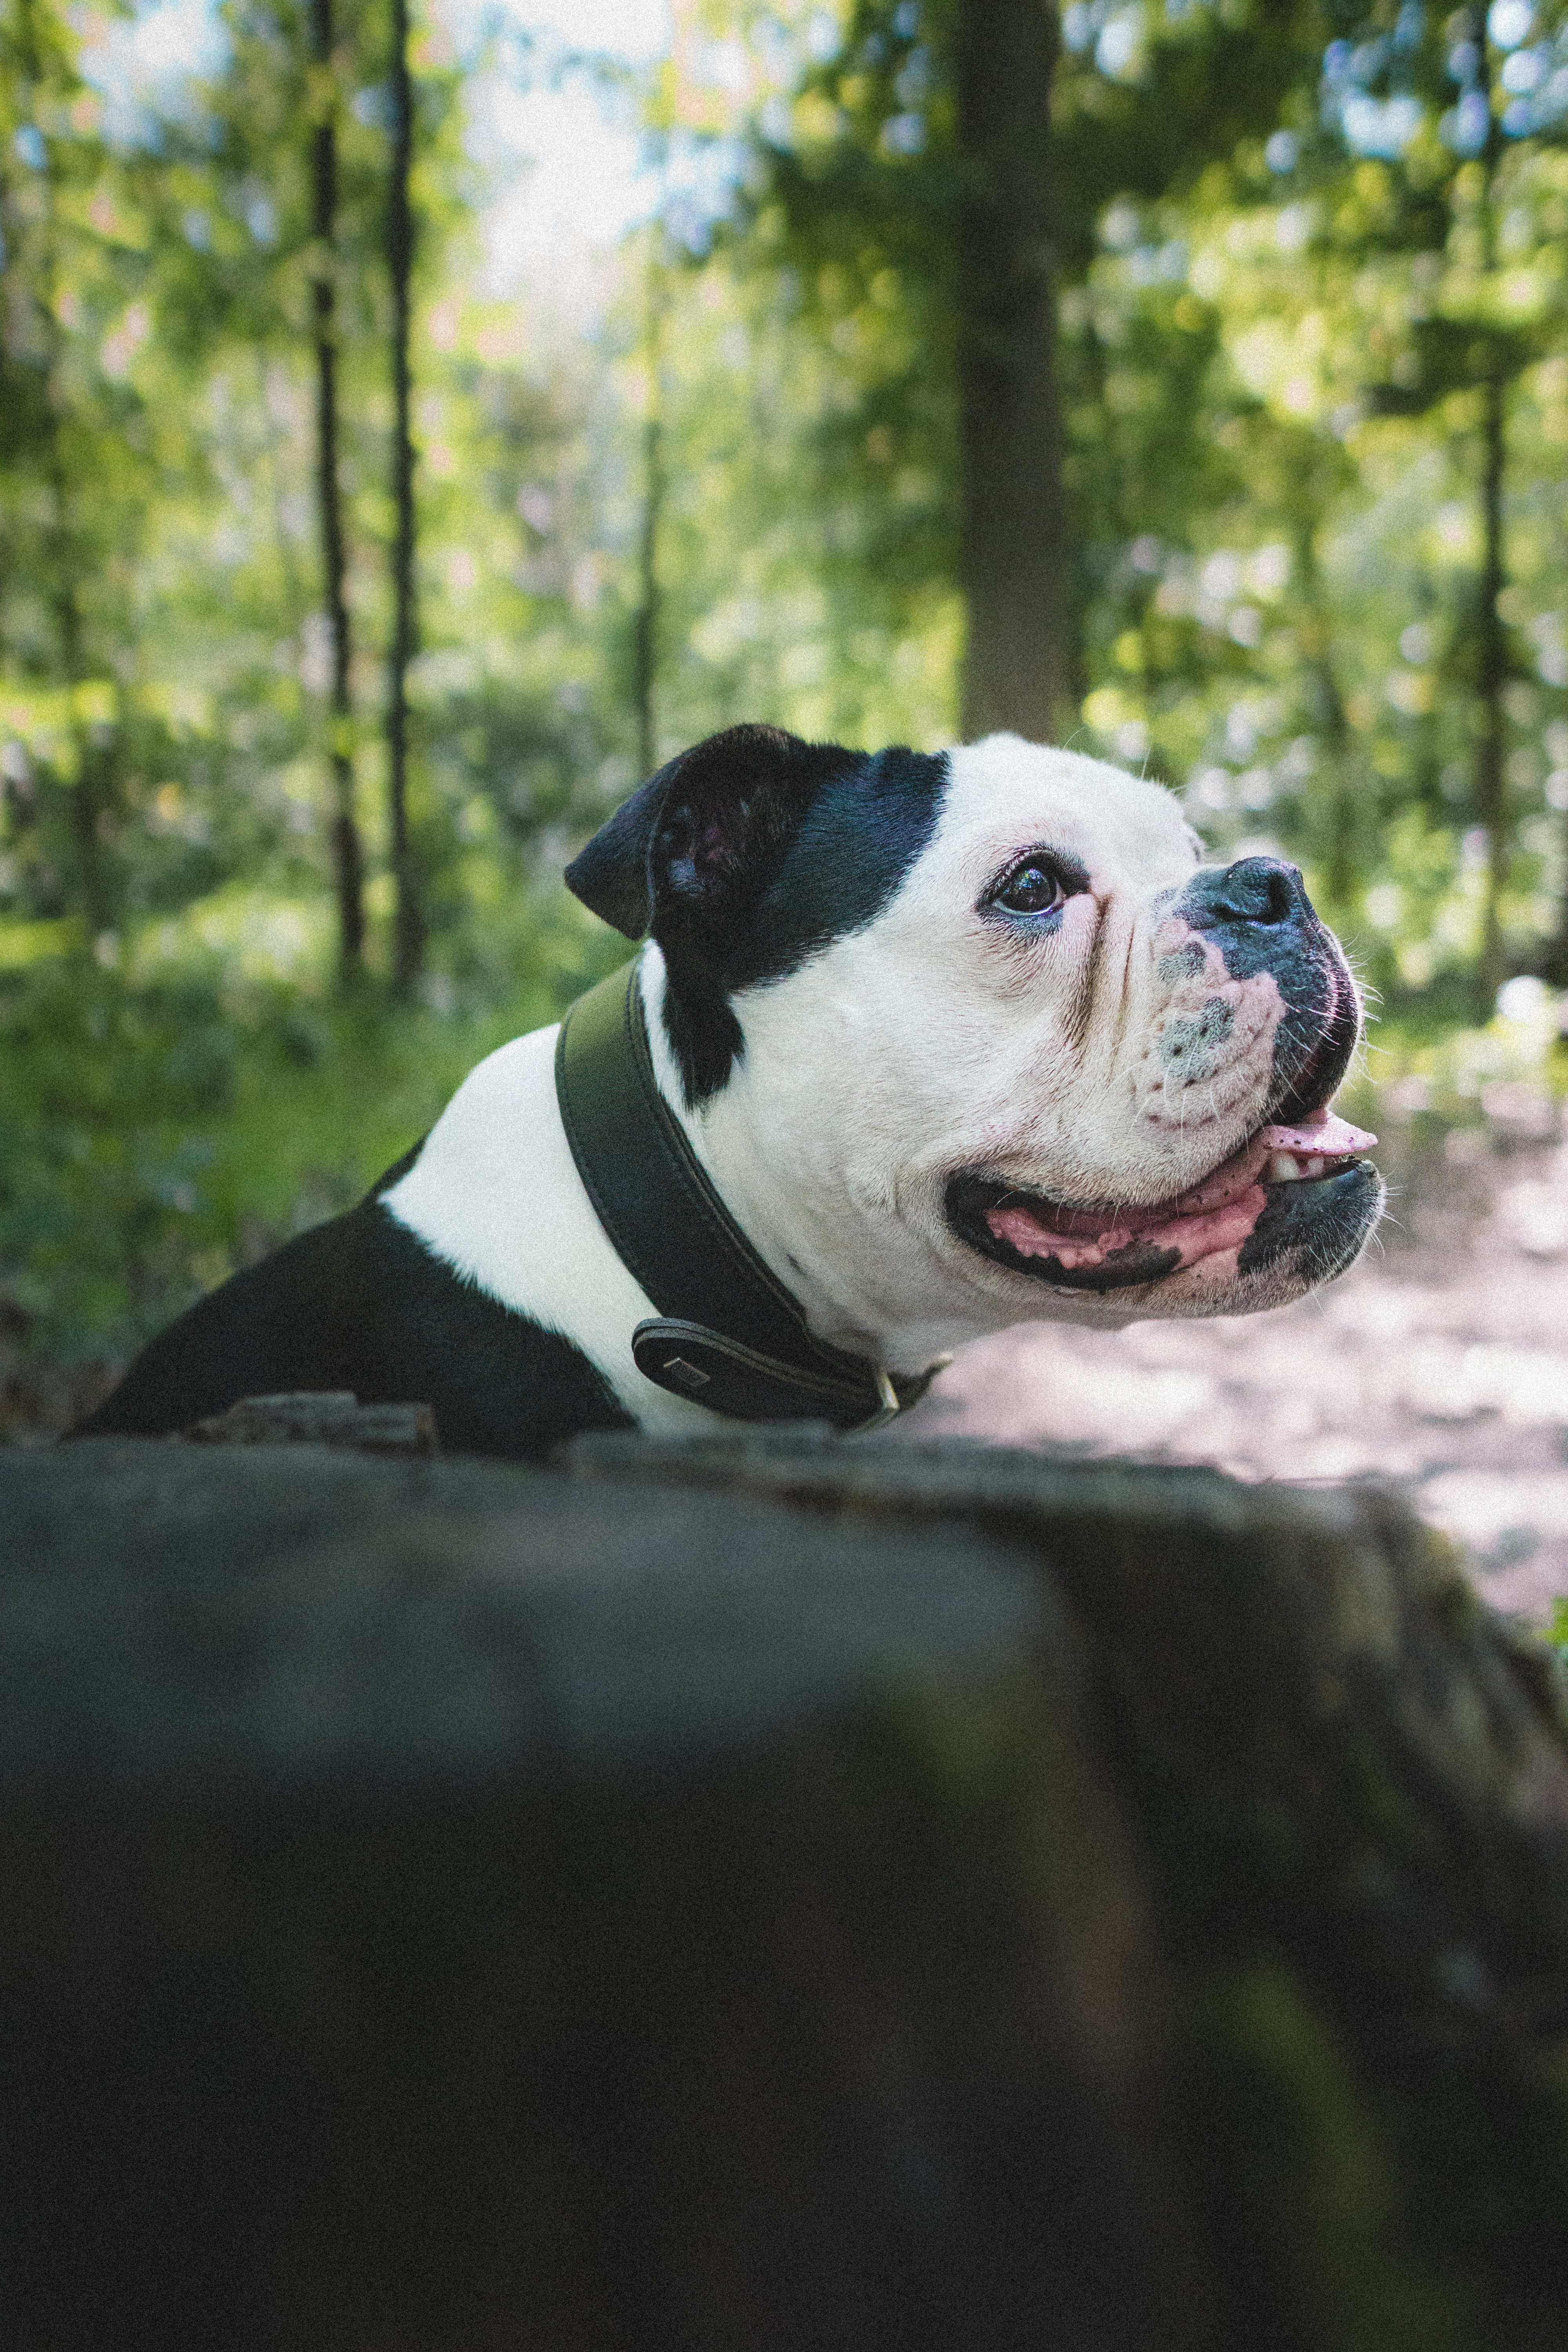 116891 download wallpaper Animals, Bulldog, Dog, Pet, Protruding Tongue, Tongue Stuck Out, Profile screensavers and pictures for free